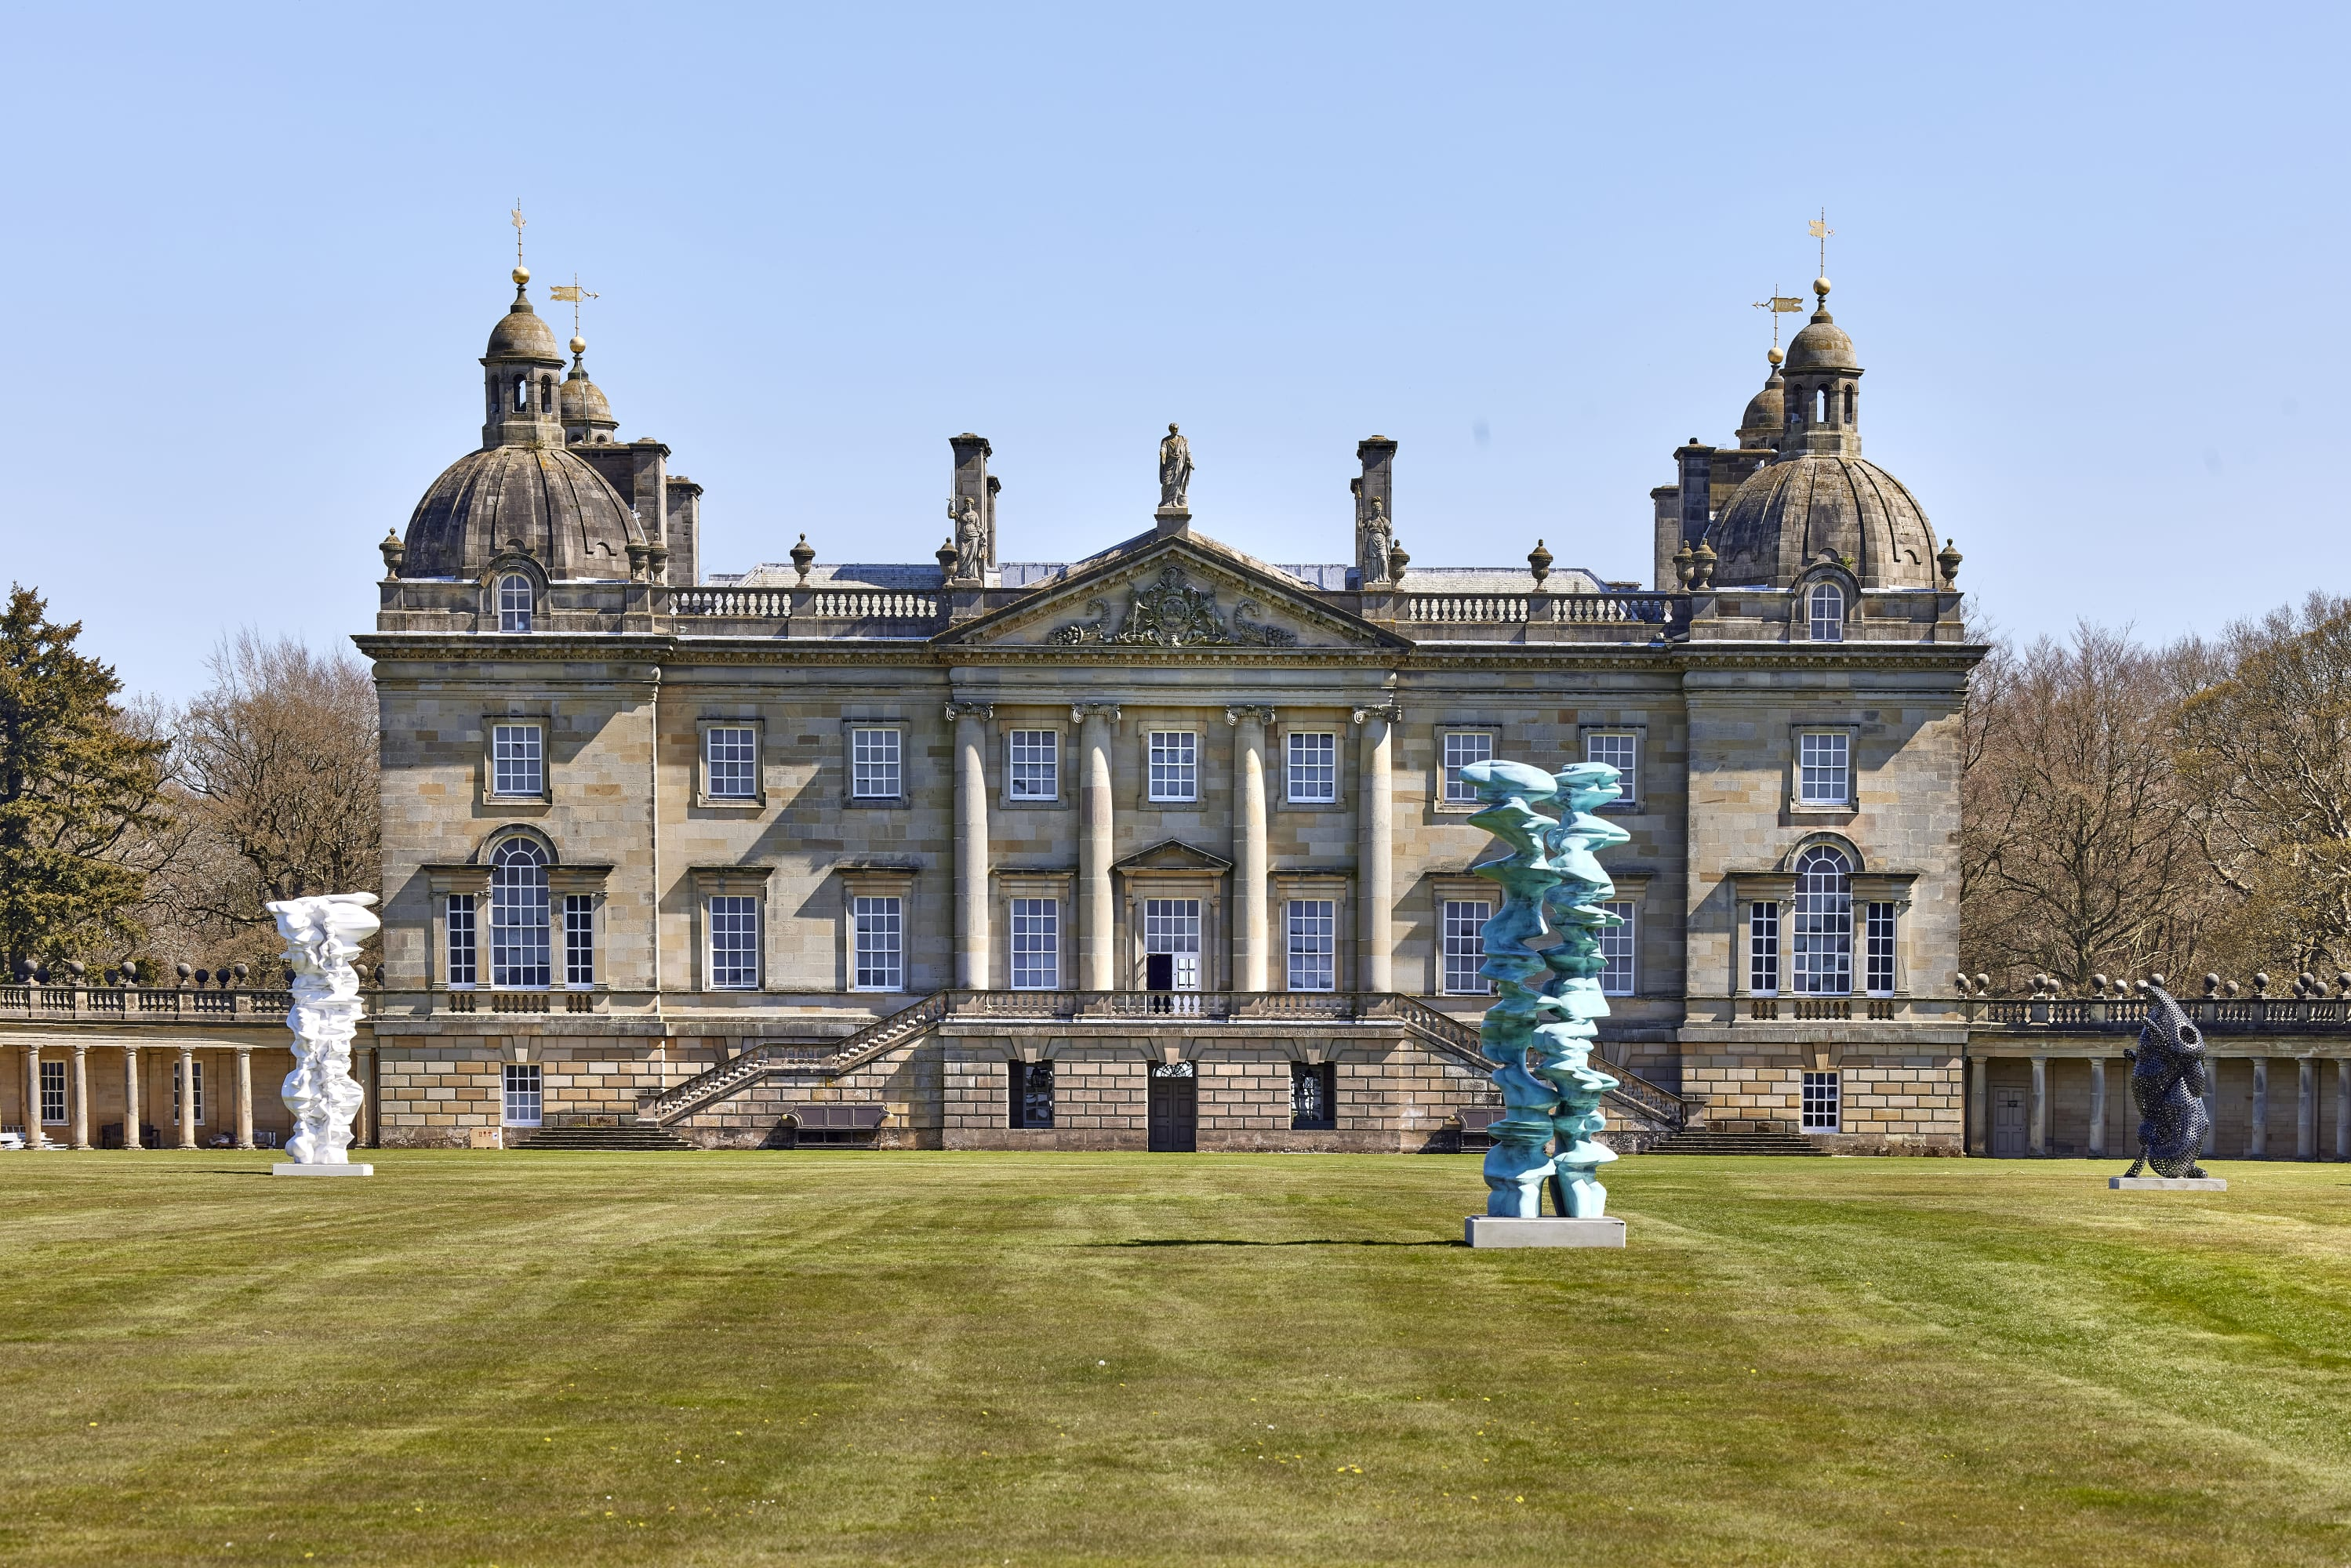 https://ropac.net/online-exhibitions/38-tony-cragg-at-houghton-hall/